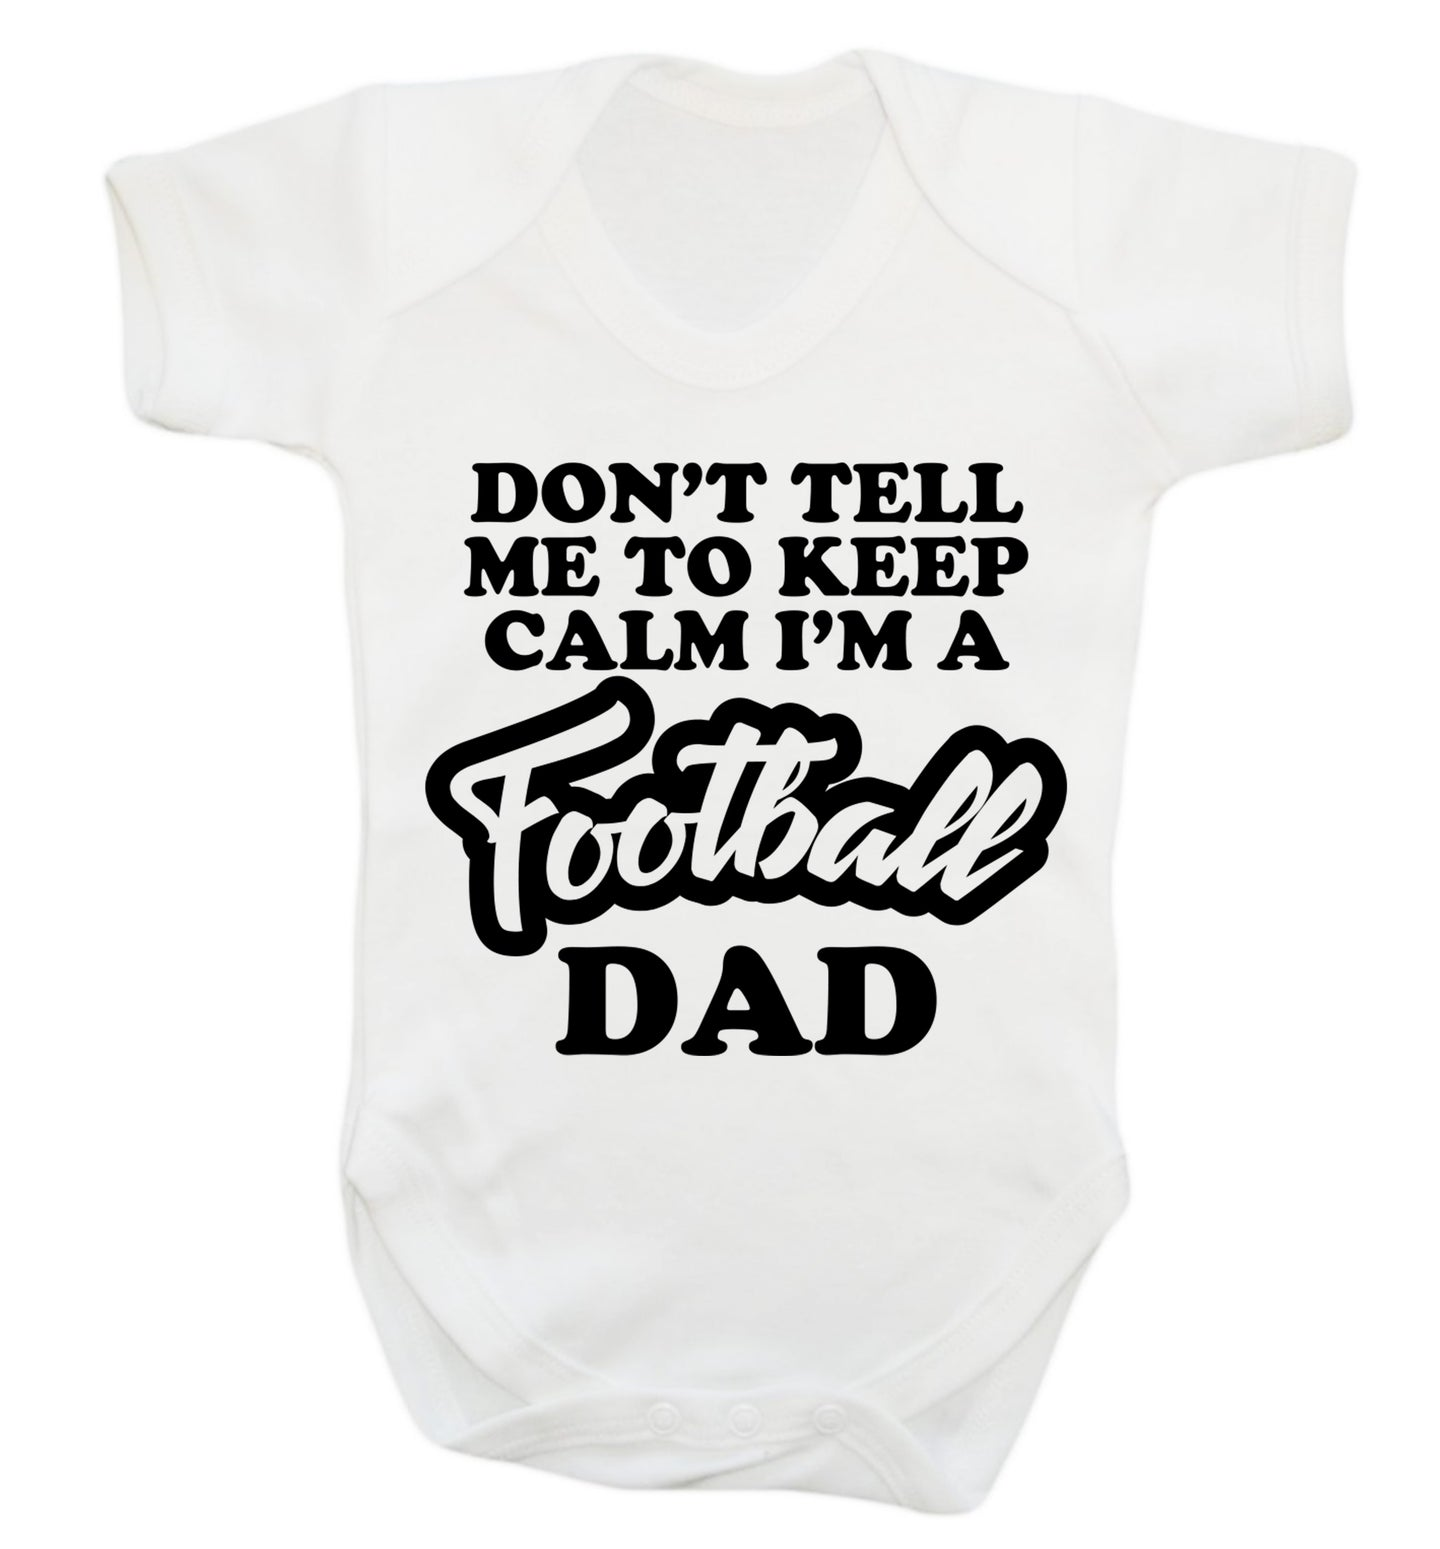 Don't tell me to keep calm I'm a football grandad Baby Vest white 18-24 months